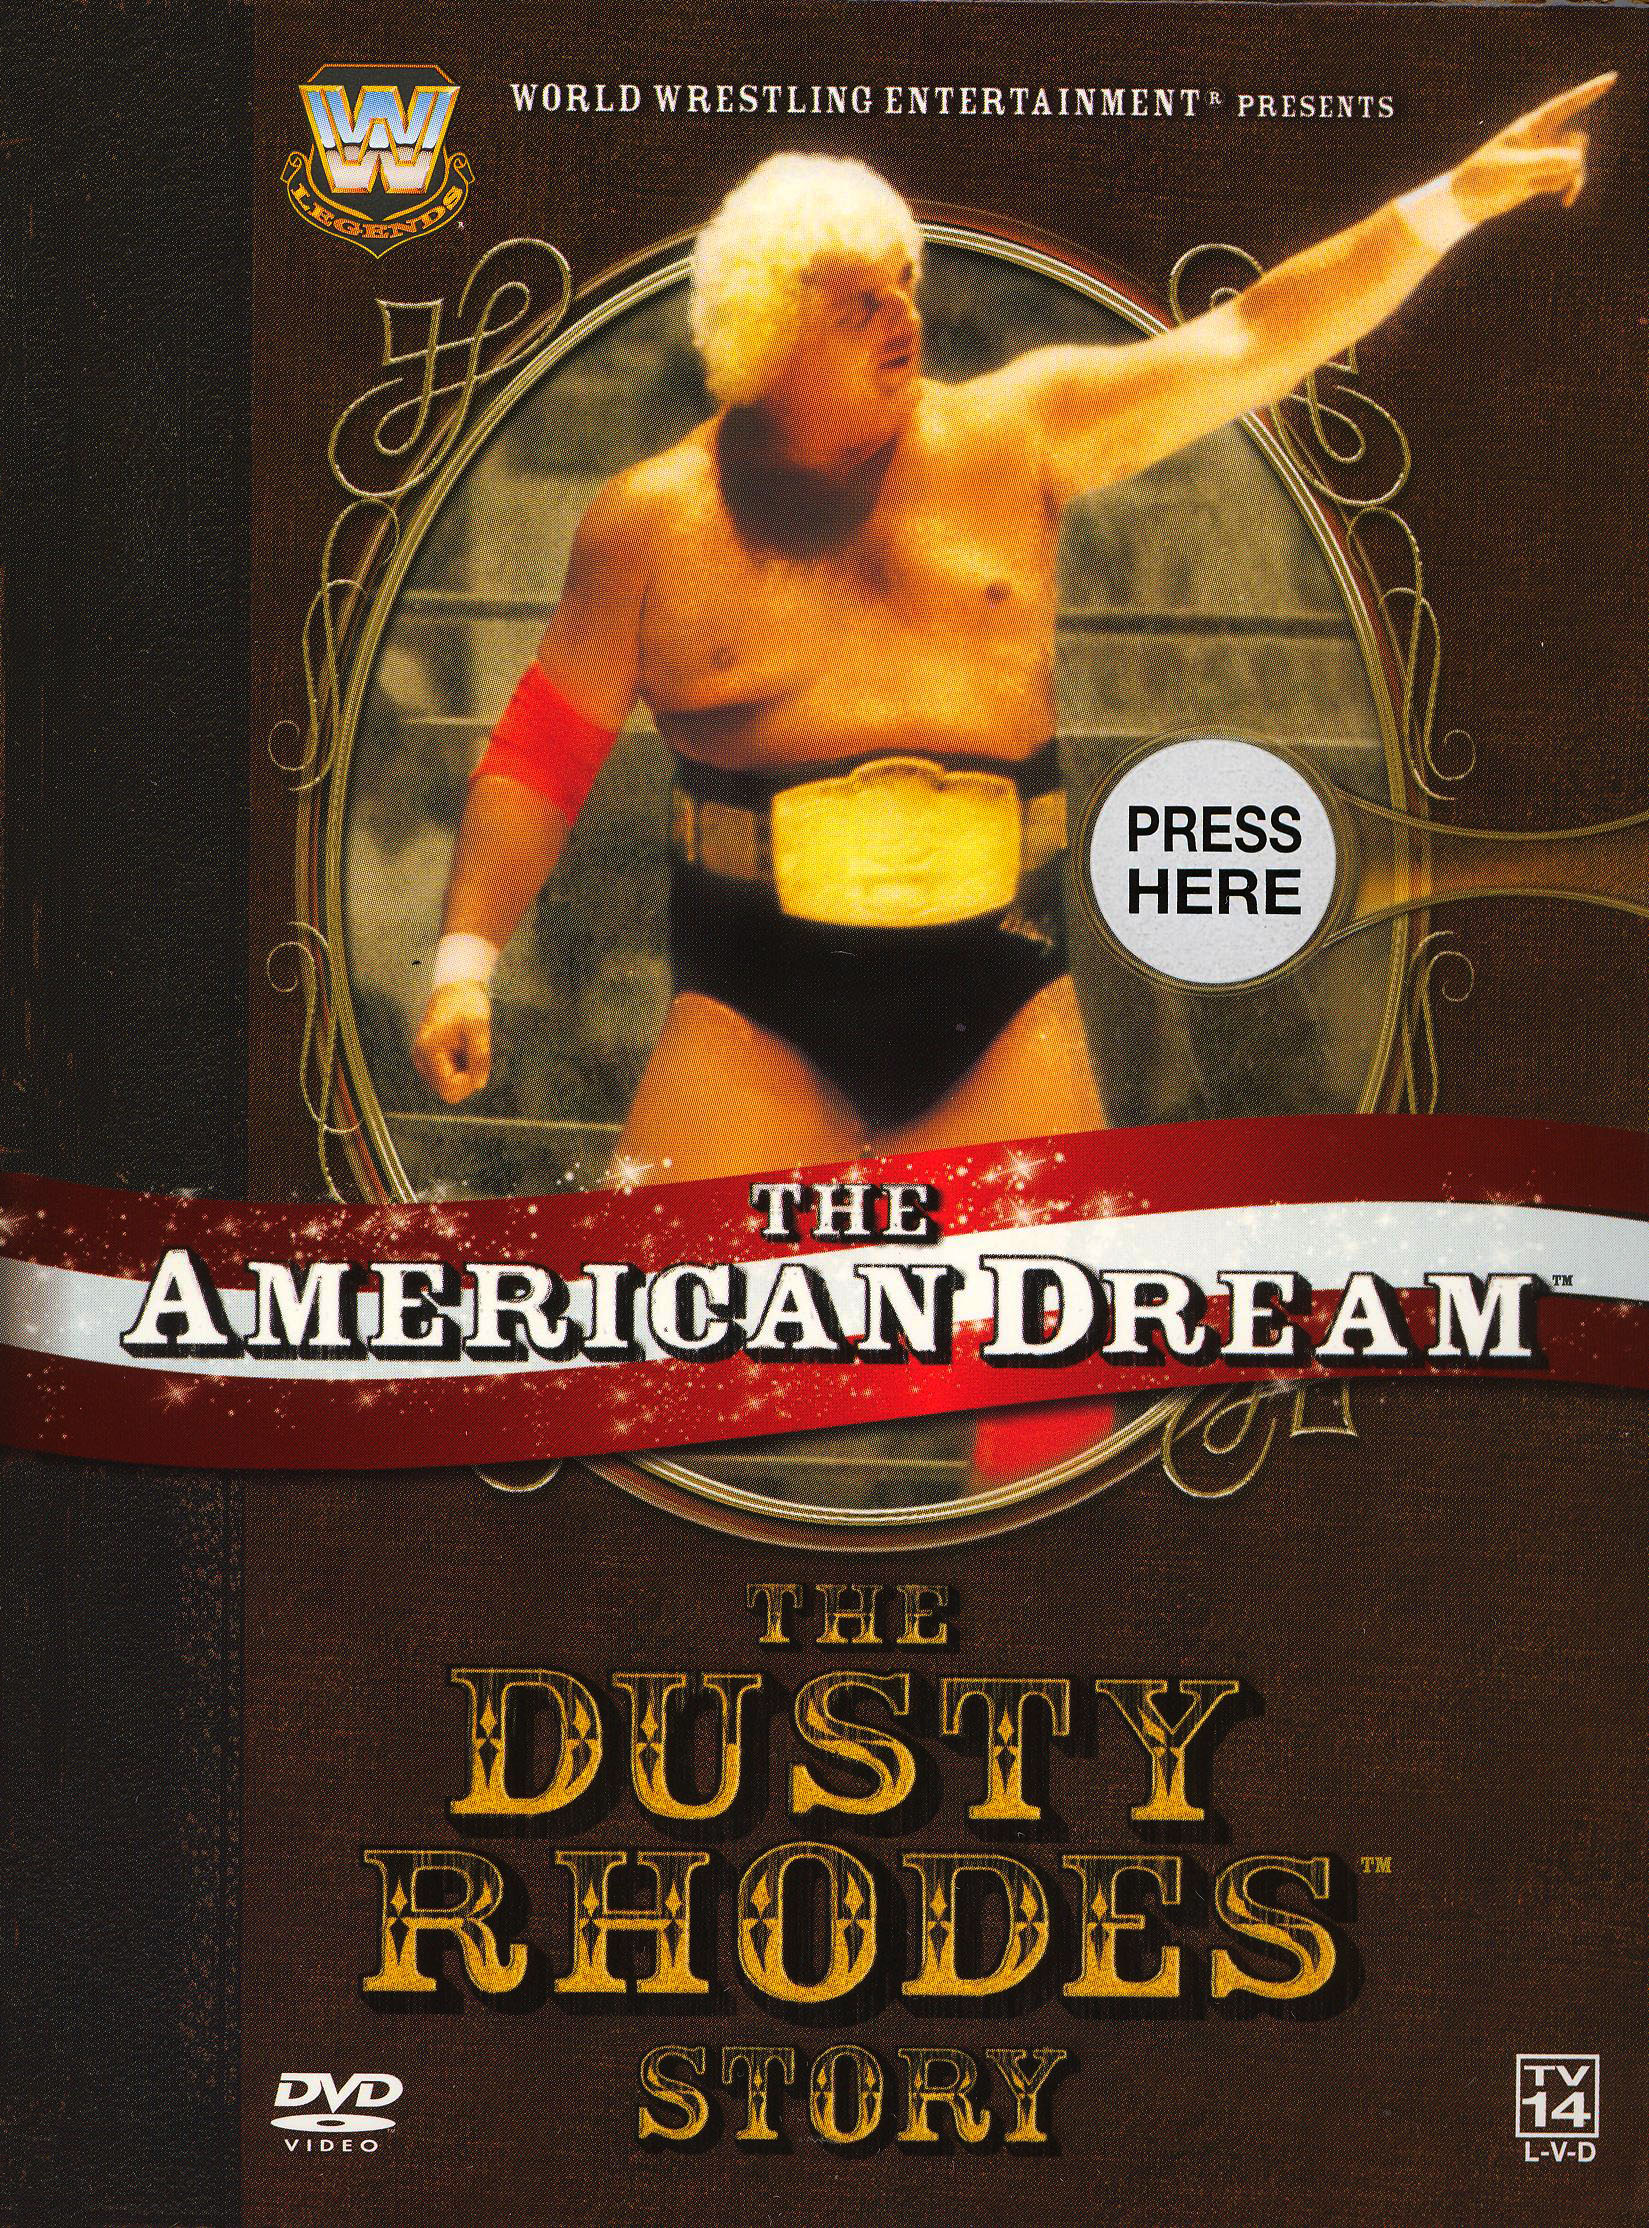 WWE: The American Dream - The Dusty Rhodes Story